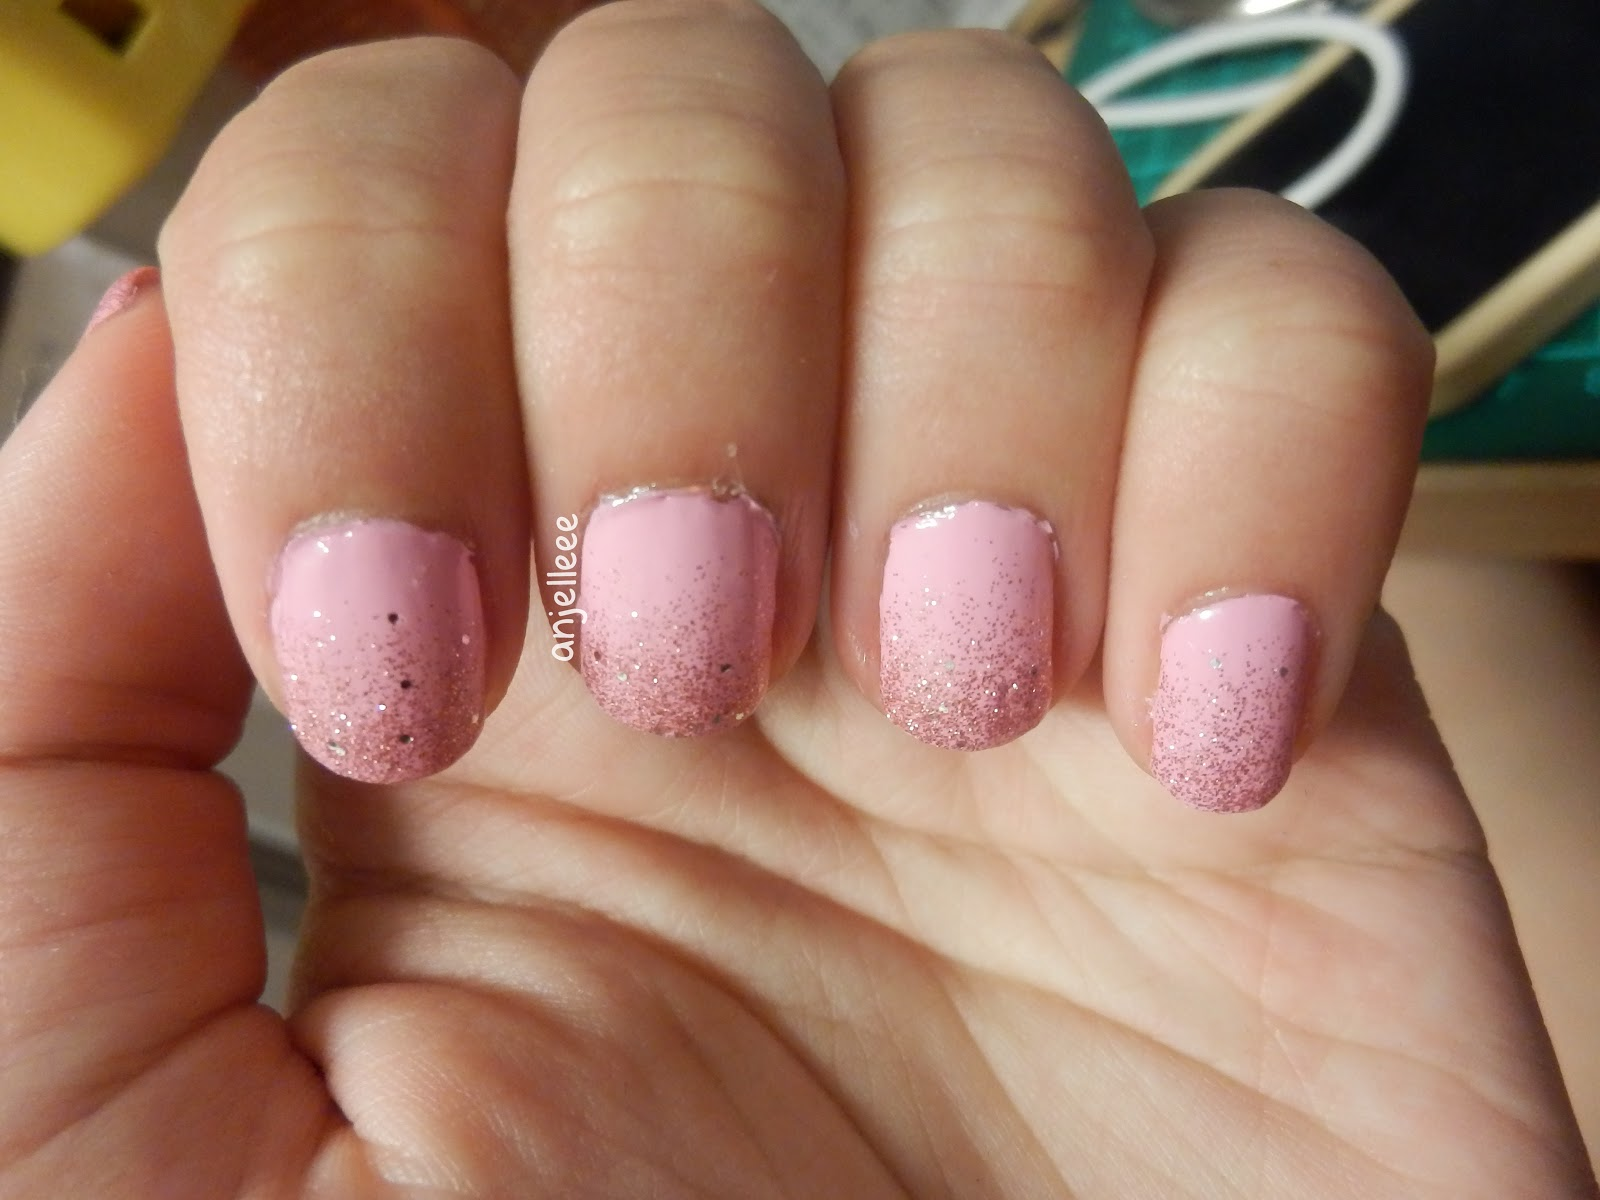 Just another beauty blogger pink gradient glitter tips a while back i painted my nail tips a gradient glitter after seeing so many people doing this they looked so pretty so i decided to try it out myself solutioingenieria Choice Image